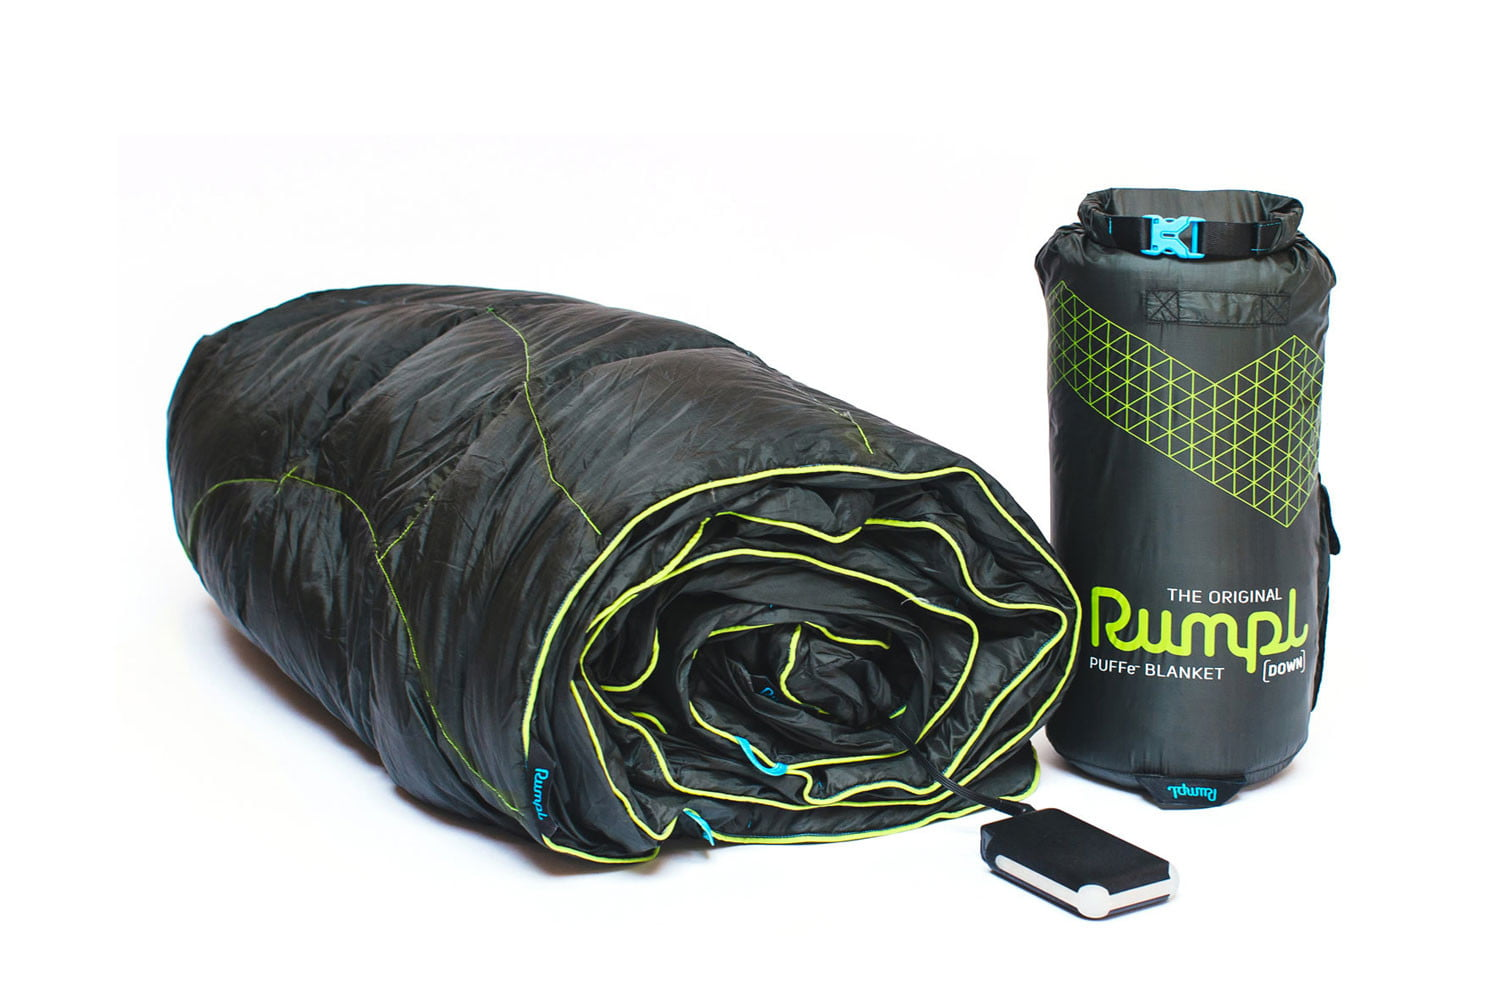 Stay warm in the wild with Rumpl's portable electric blanket